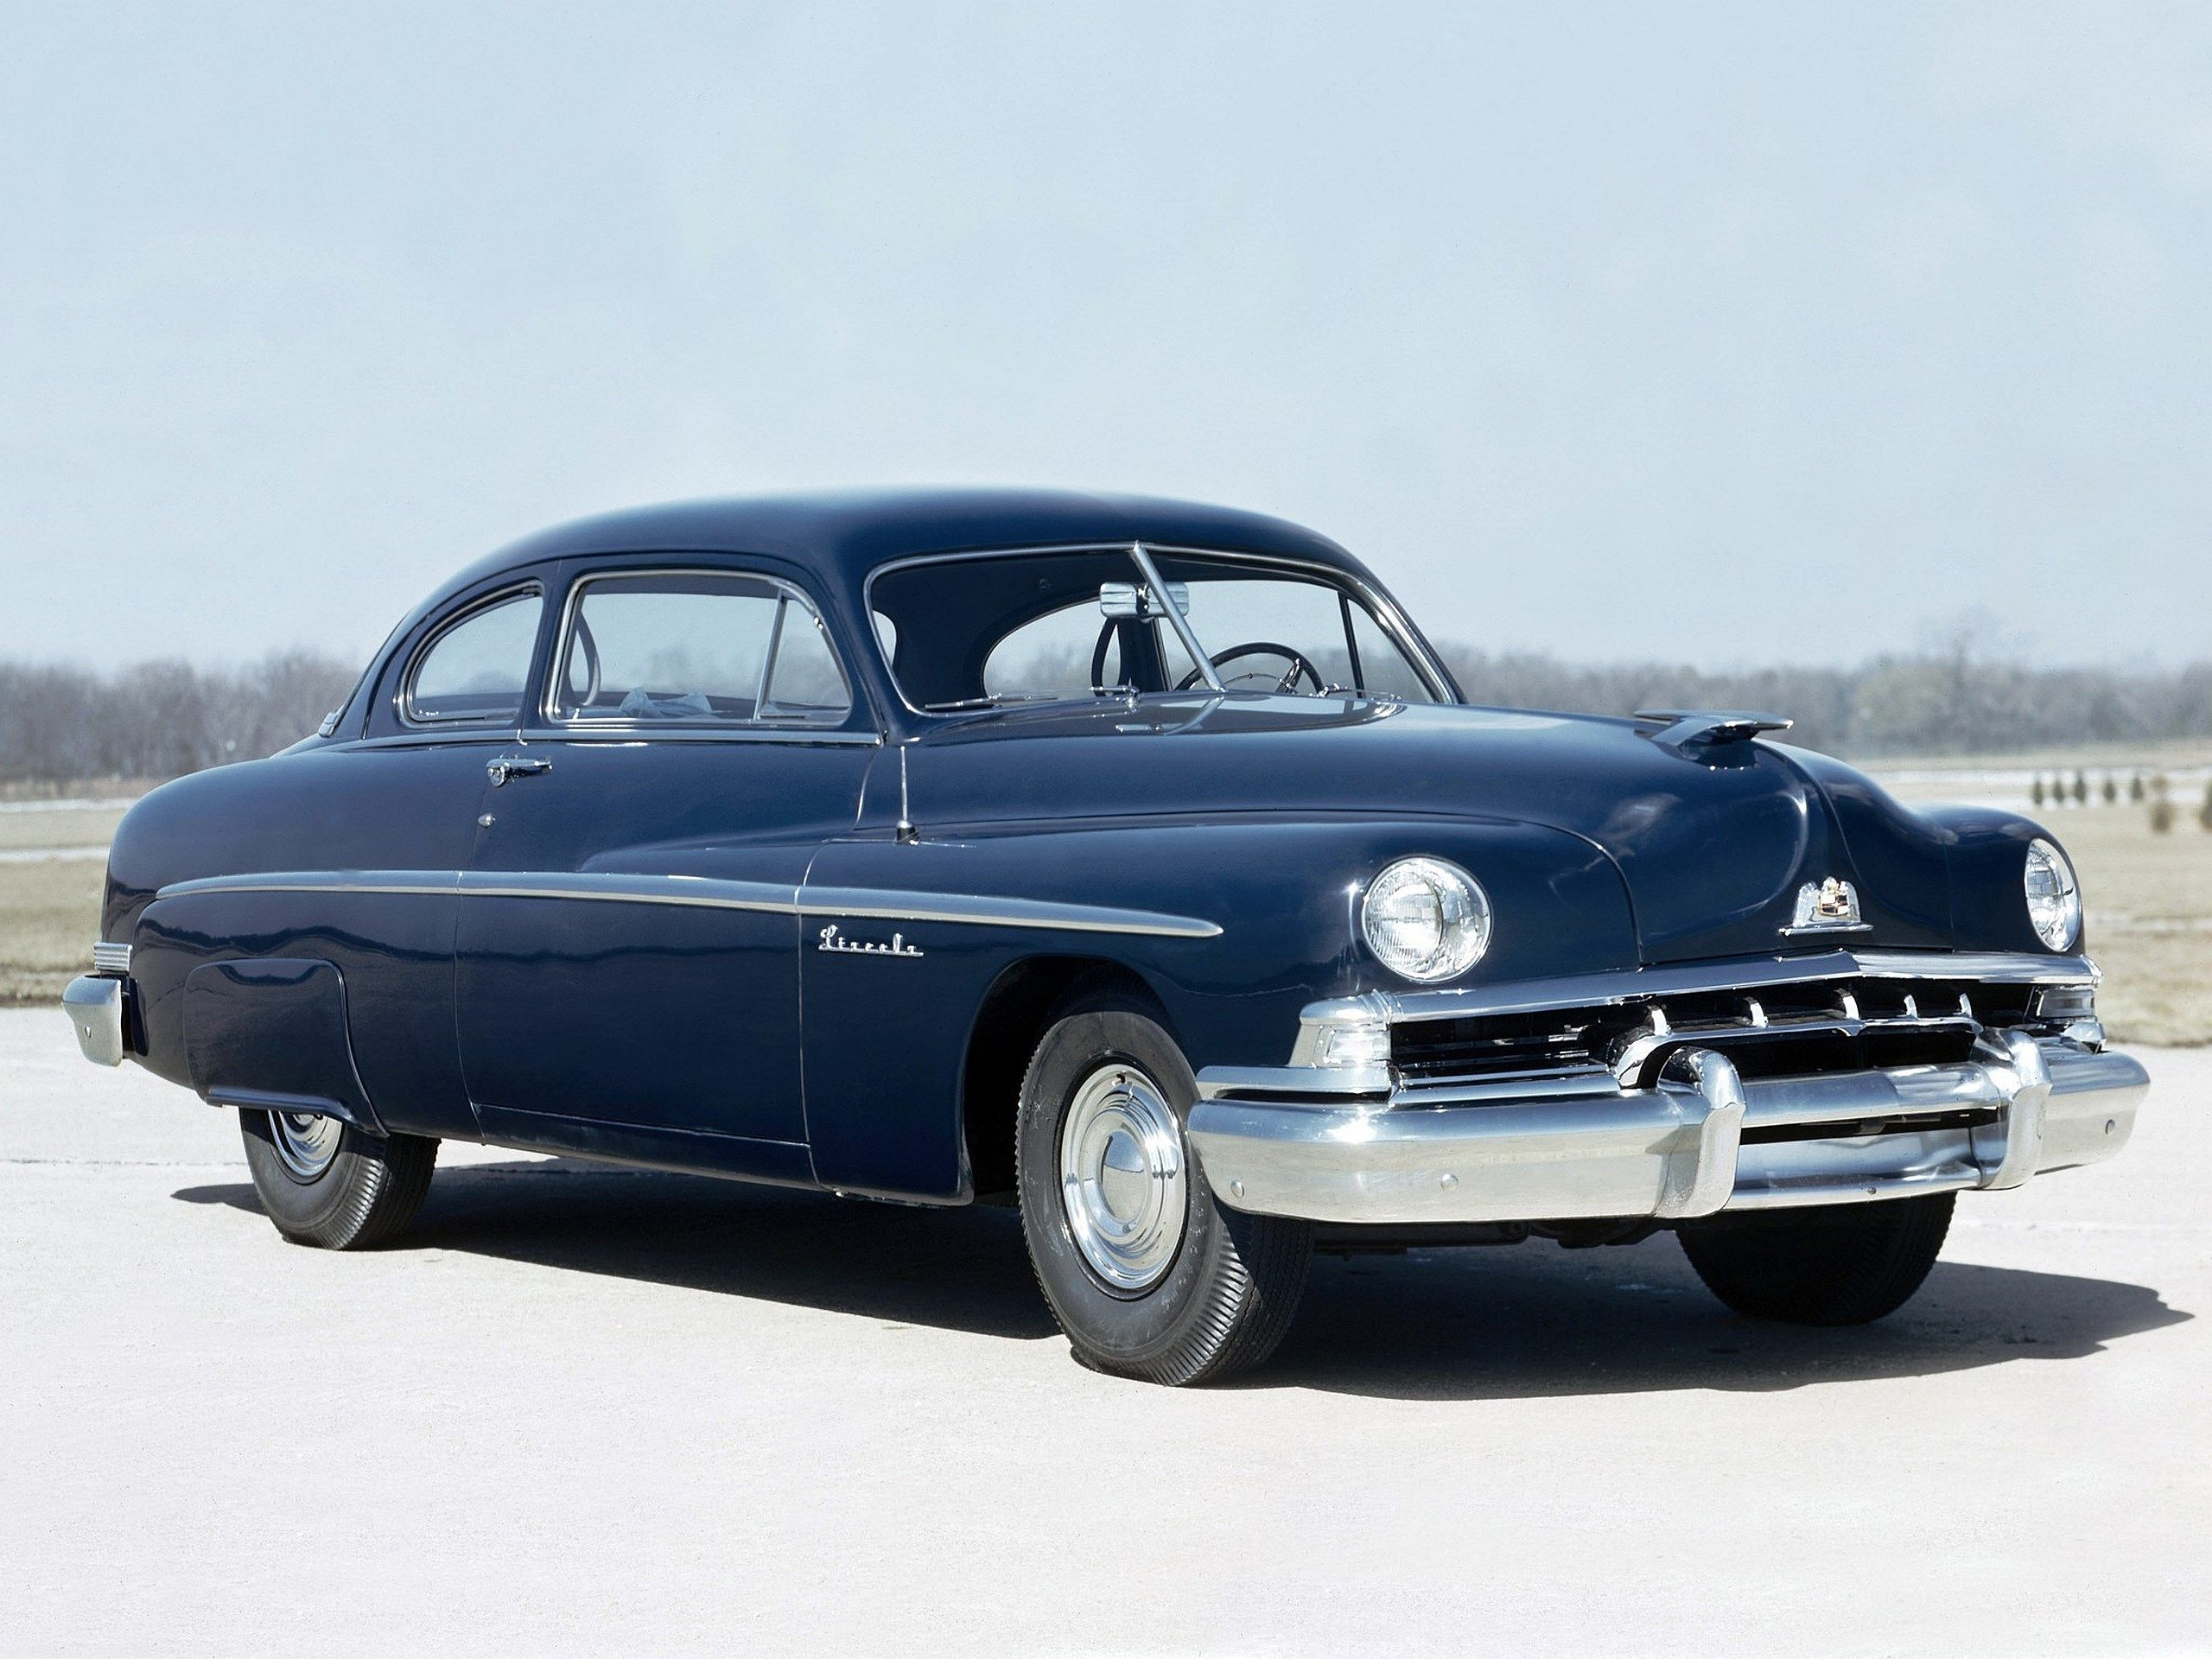 Pictures for Desktop 1951 lincoln 6 passenger coupe